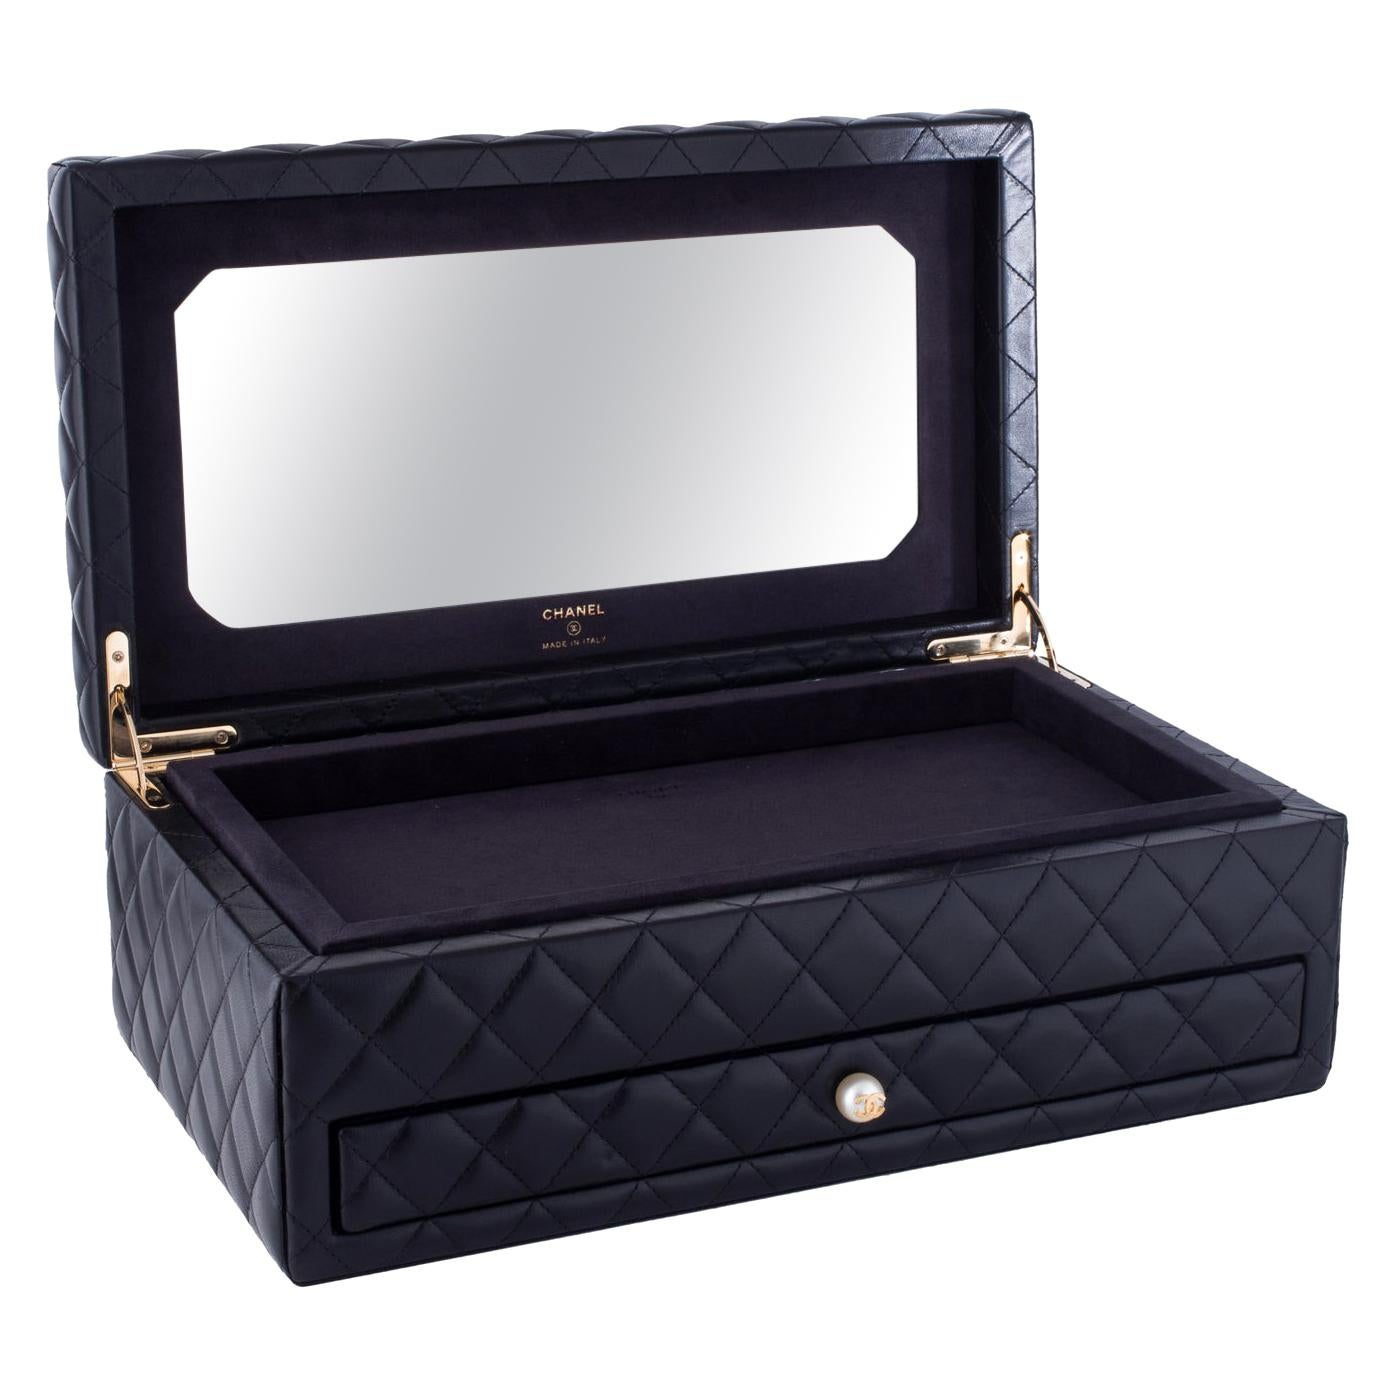 Chanel Black Vanity Case Limited Edition Rare Home Decor Cosmetic Jewelry Box